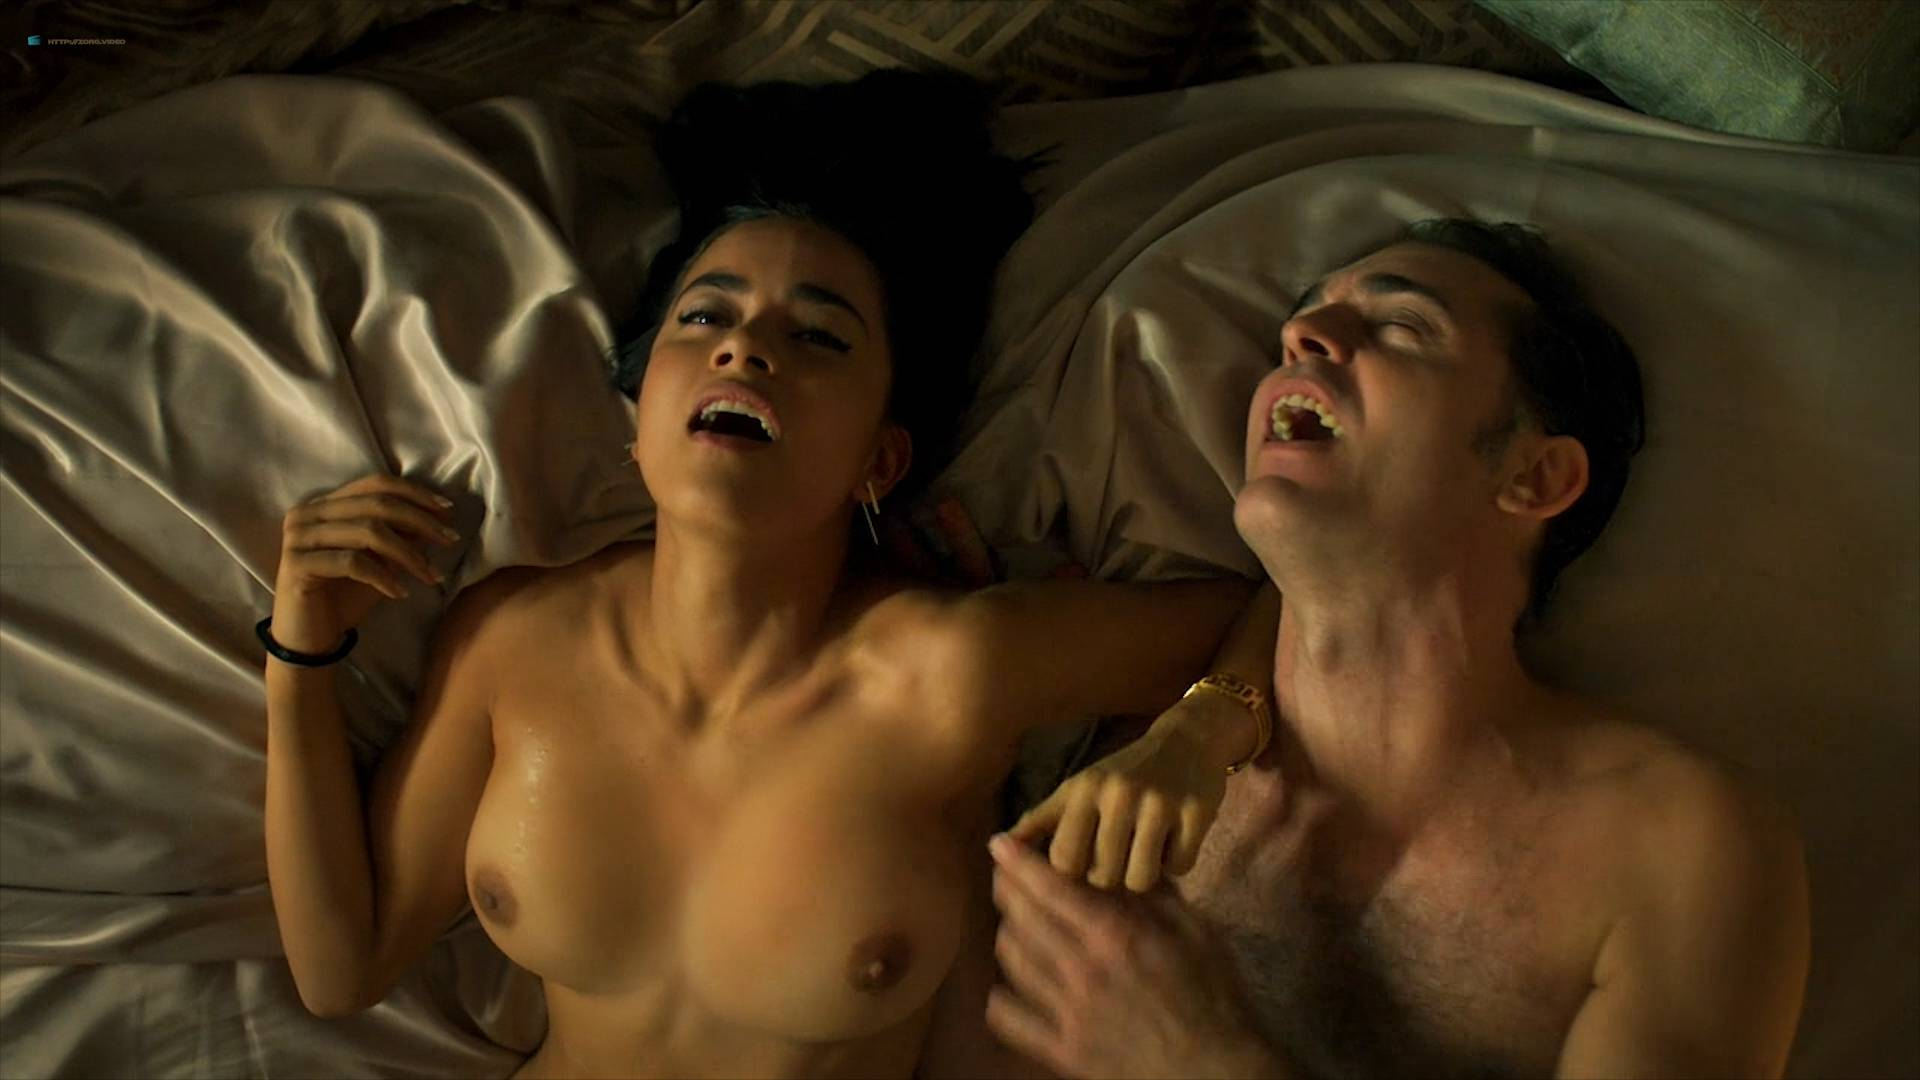 Accept. The Naked maggie cheung nude